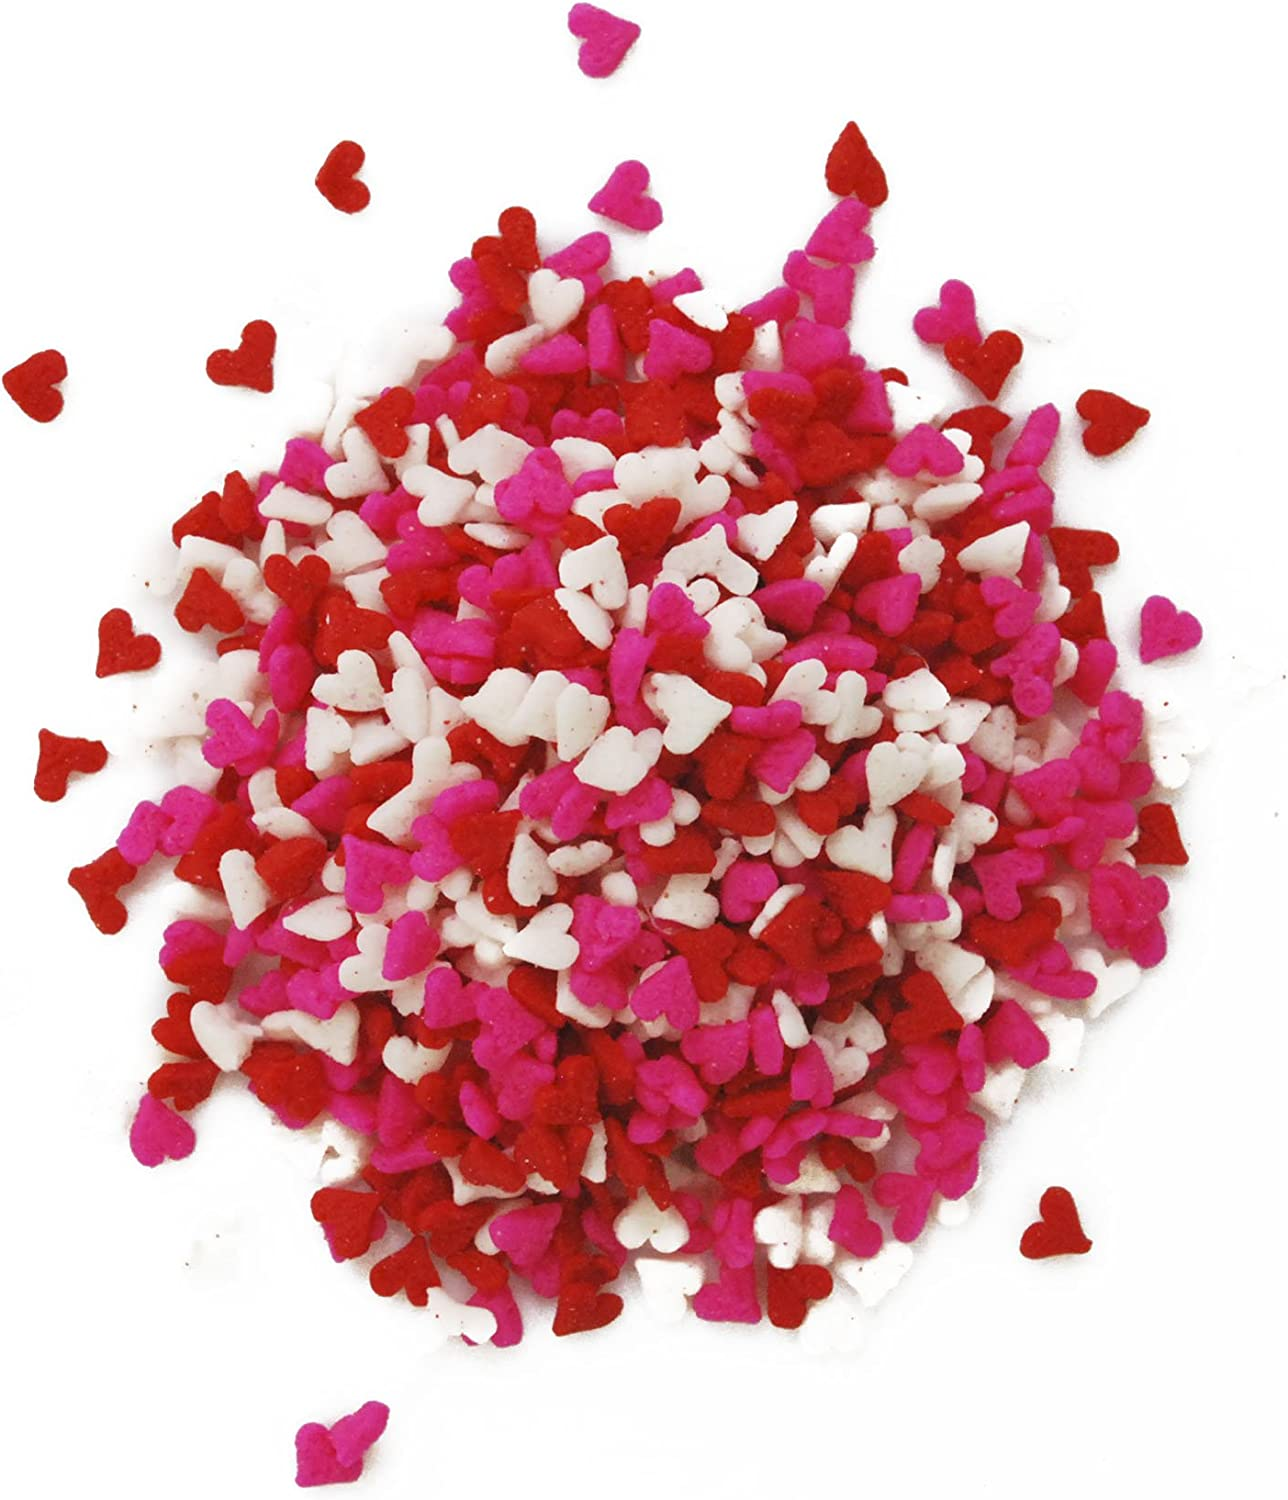 cupcake sprinkles I Can Hear The Bells Wedding inspired Heart Sprinkle Mix Cake decorating